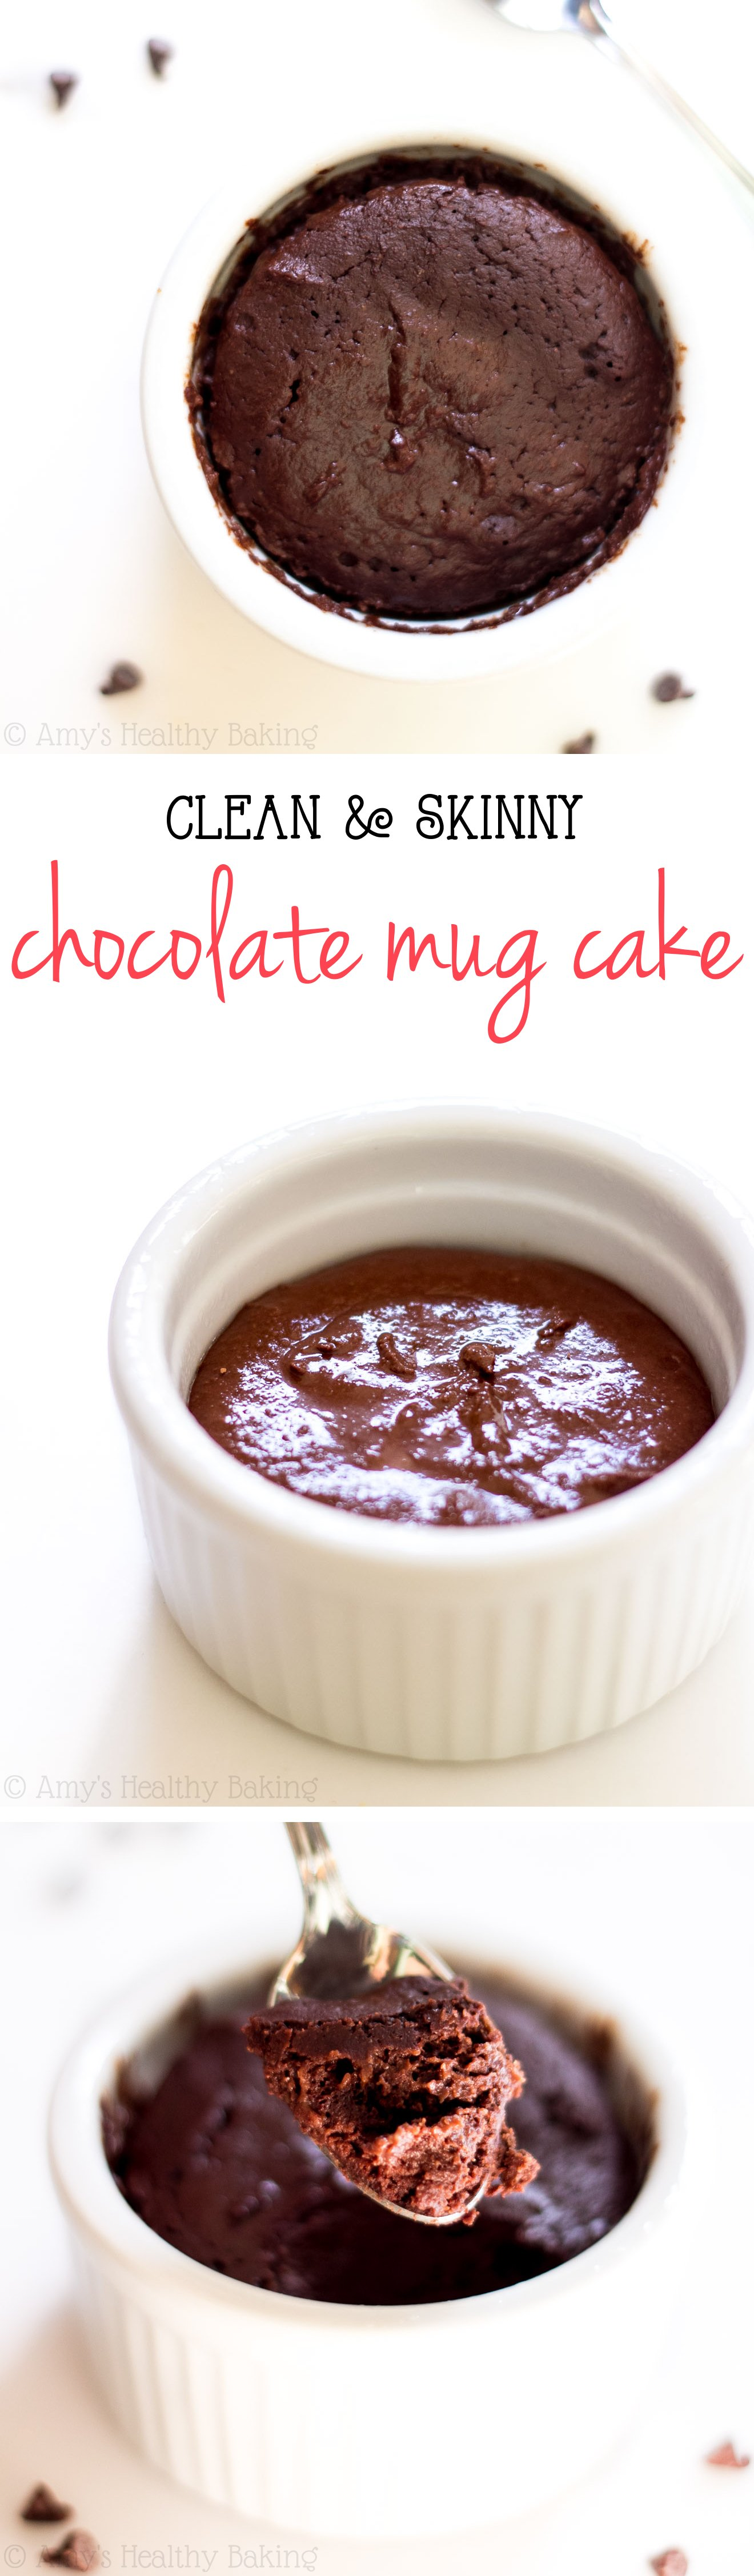 Single-Serving Clean Chocolate Mug Cake -- a decadent cake that's practically healthy enough for breakfast & ready in just 10 minutes! Barely 140 calories with 6g of protein!